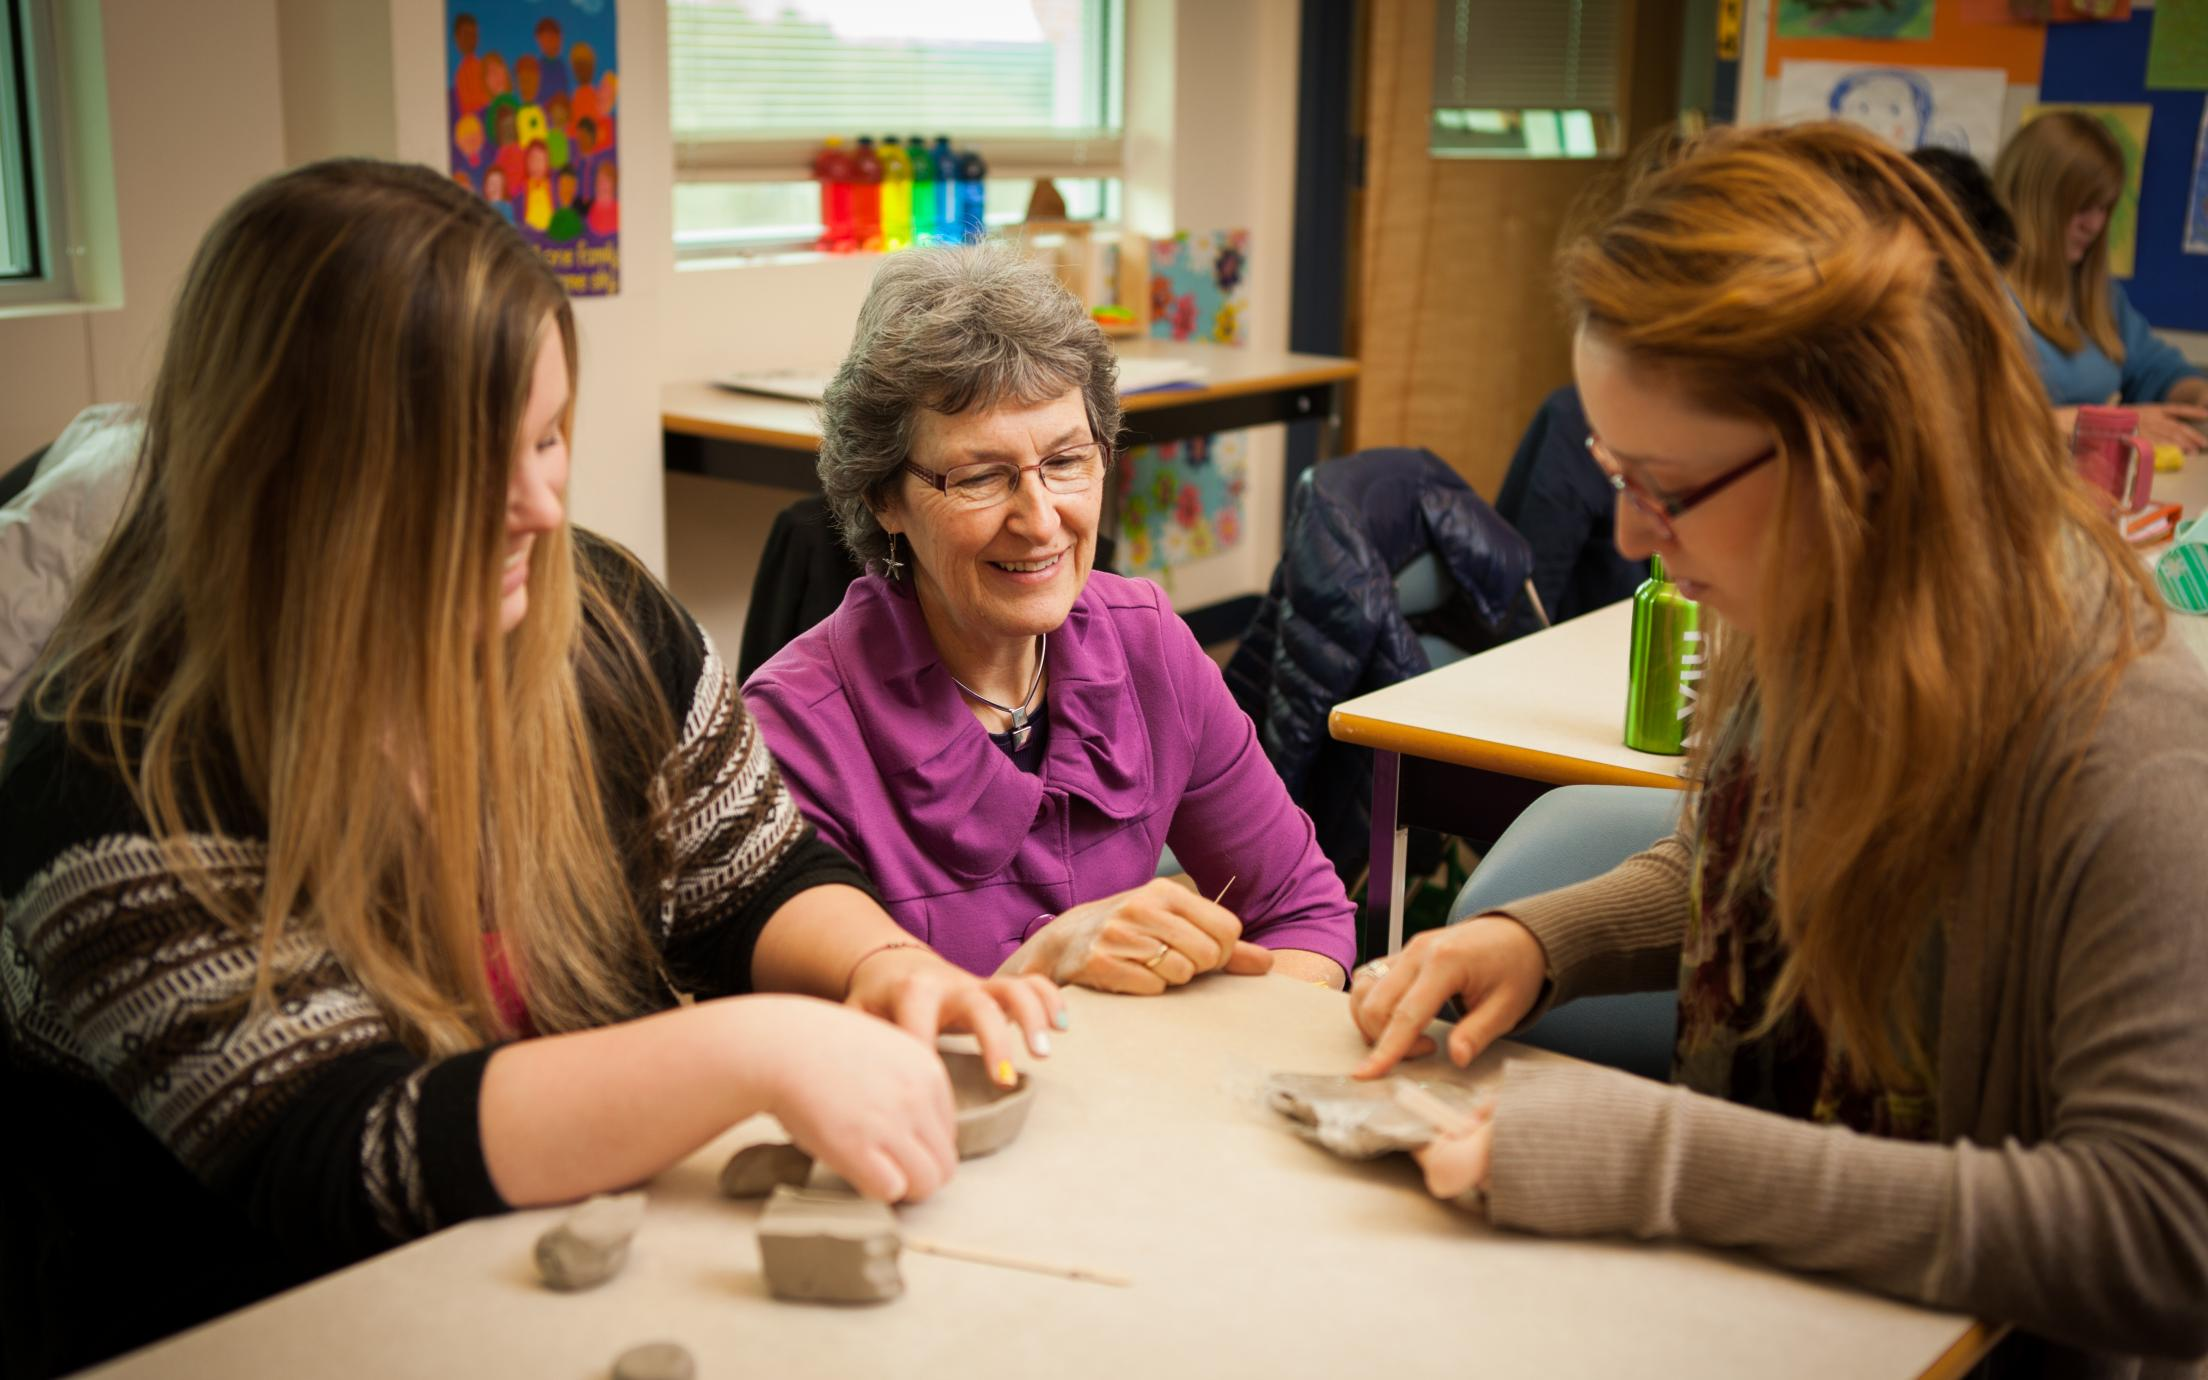 A VIU Faculty member mentoring students in her class.